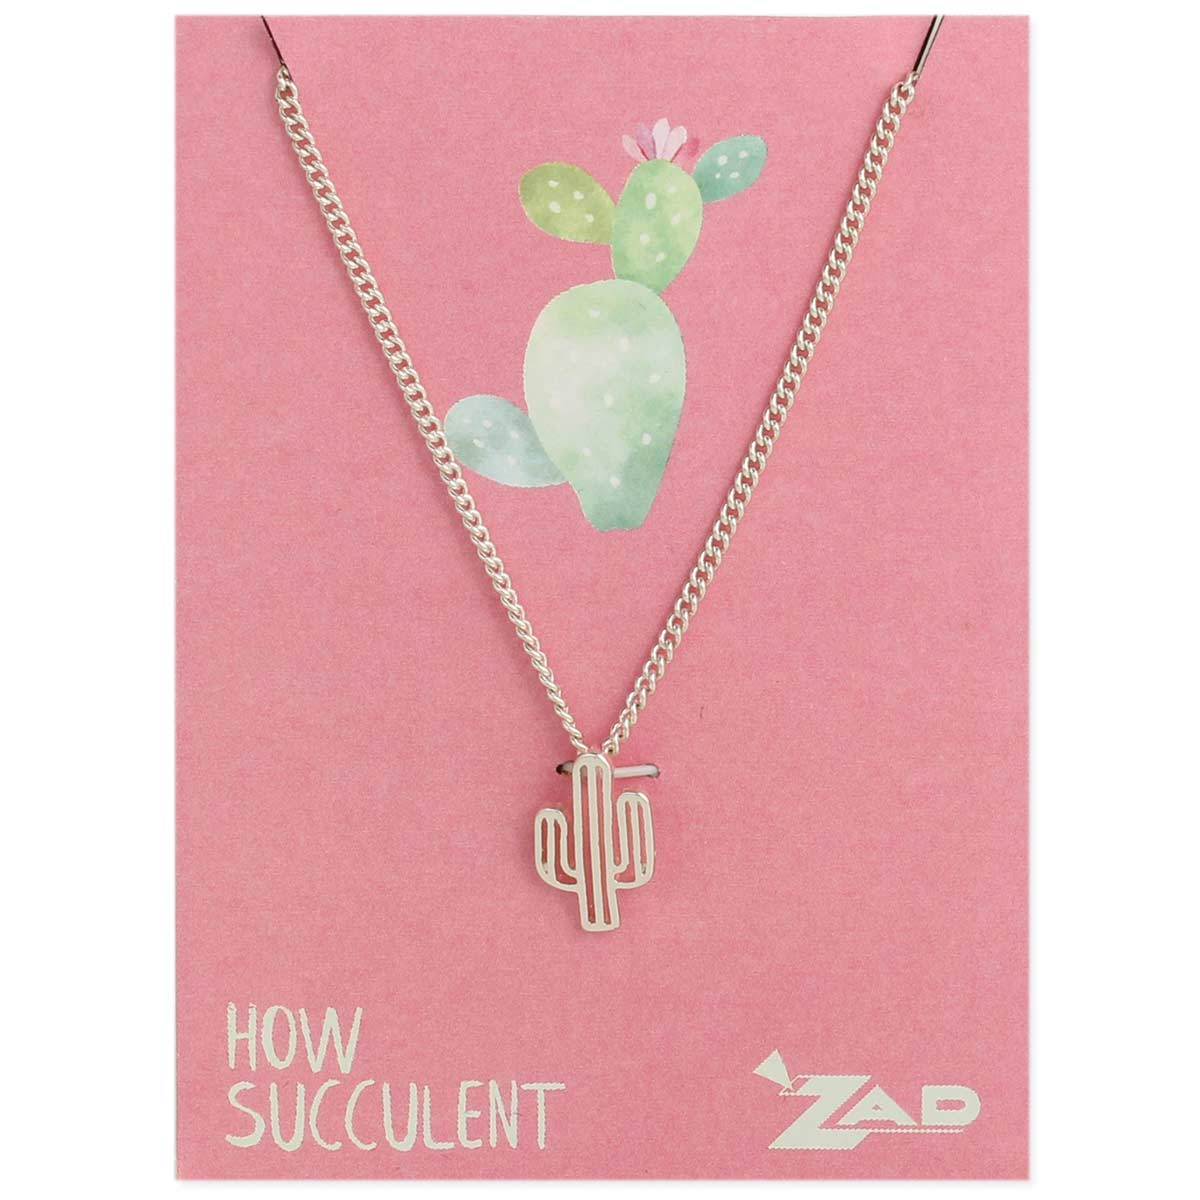 Cutout Cactus Necklace on Pink Card